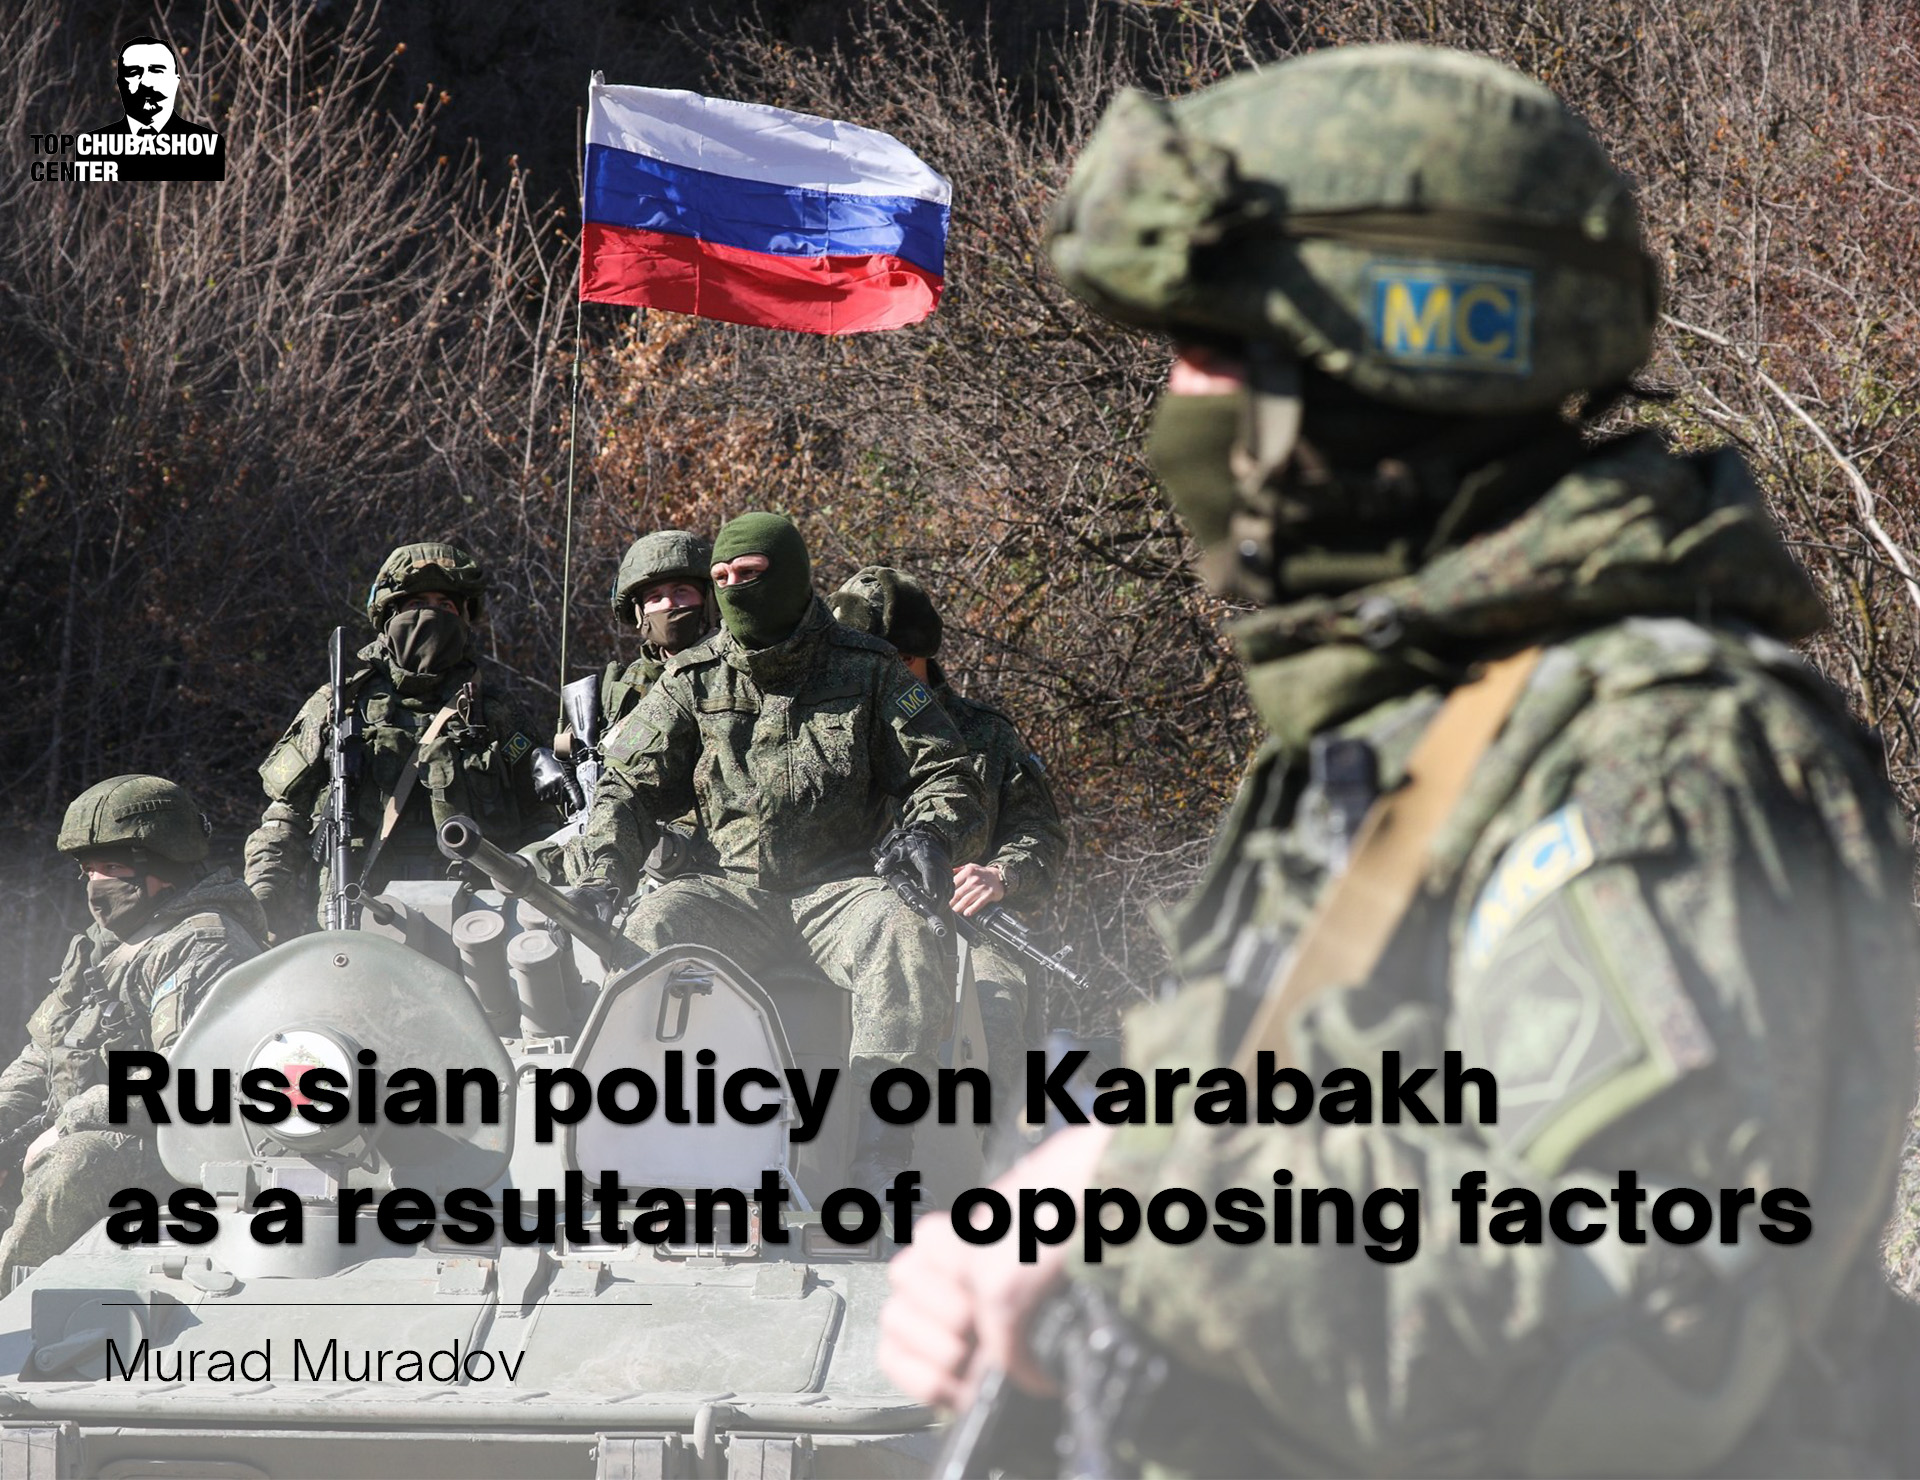 Russian policy on Karabakh as a resultant of opposing factors